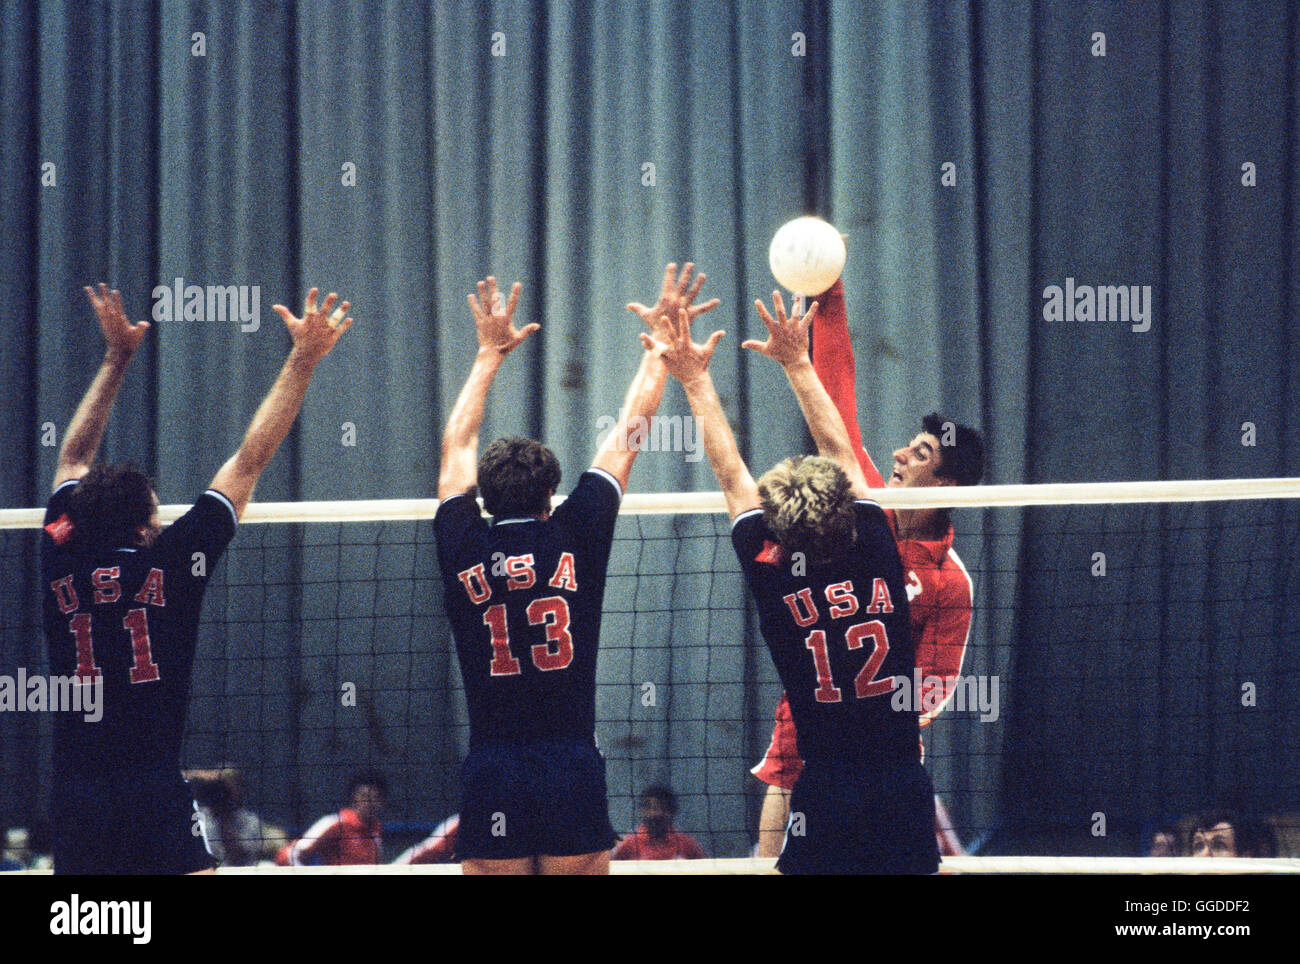 USA men's 1984 L'équipe de volley-ball olympique en action à Long Beach Arena Photo Stock